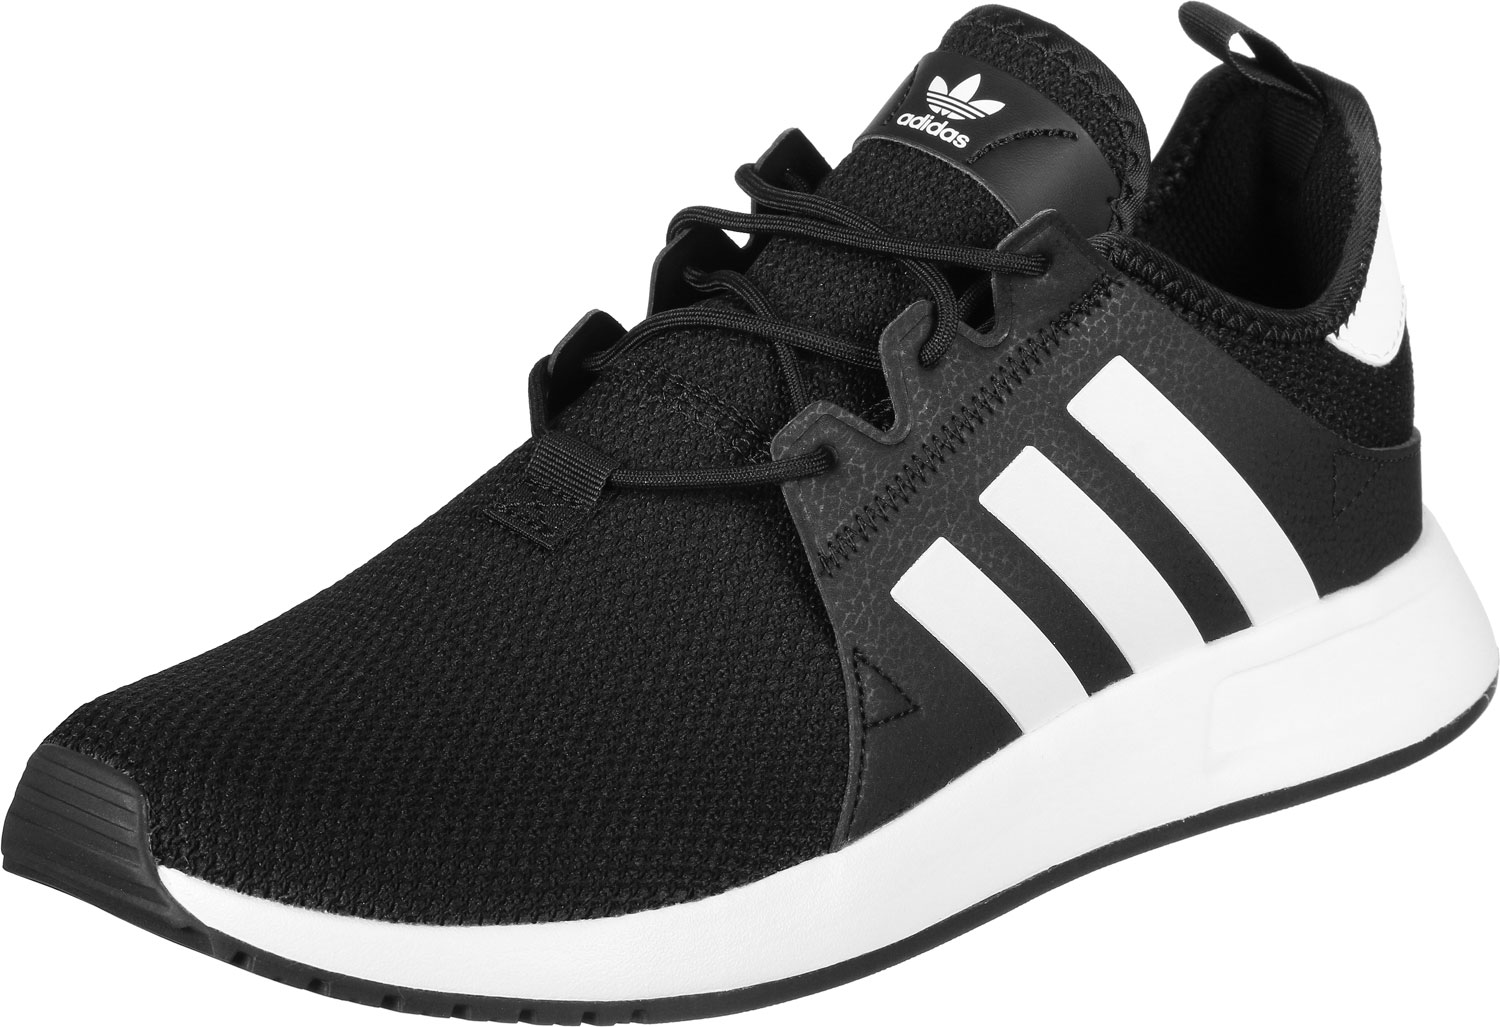 adidas X PLR - Sneakers Low at Stylefile